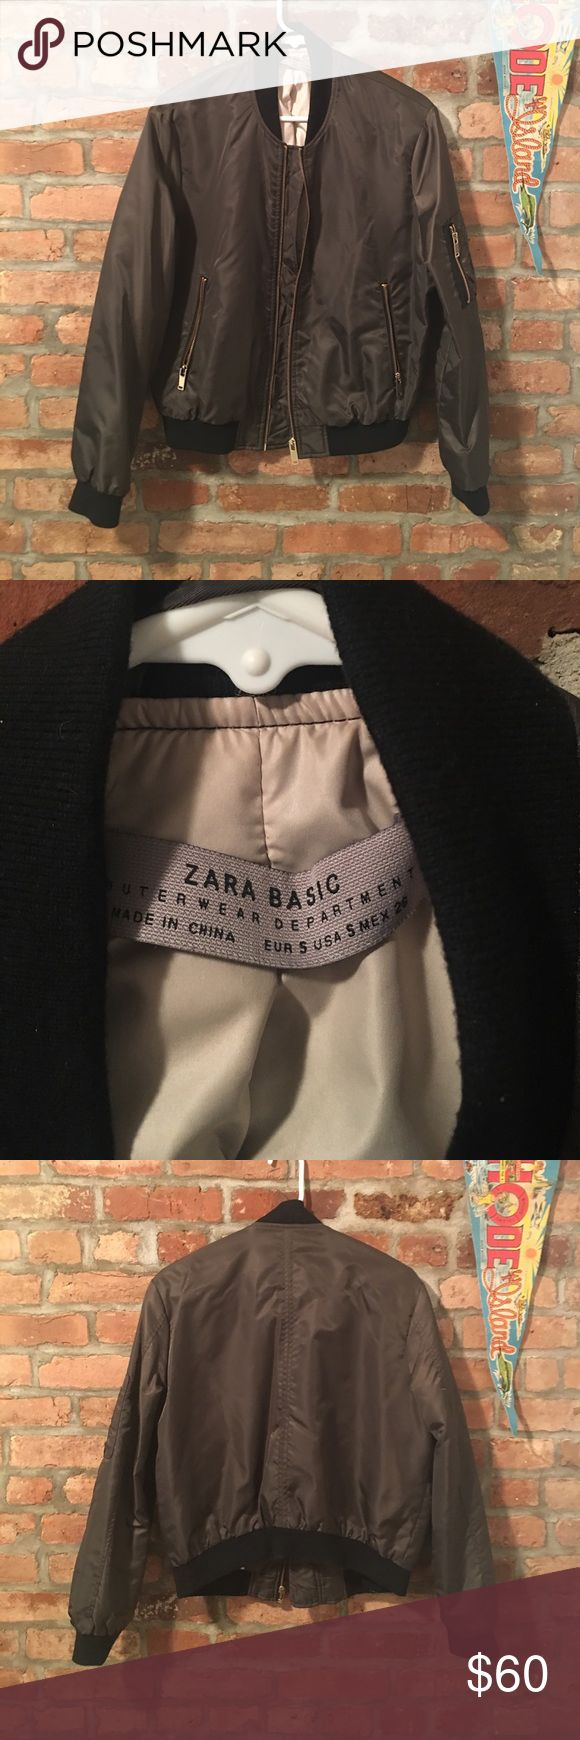 Zara bomber jacket USA size S olive green like new Great bomber jacket only worn a few times. Olive green satin like sheen but more durable like nylon. Great for the spring. Size S. Zara Jackets & Coats